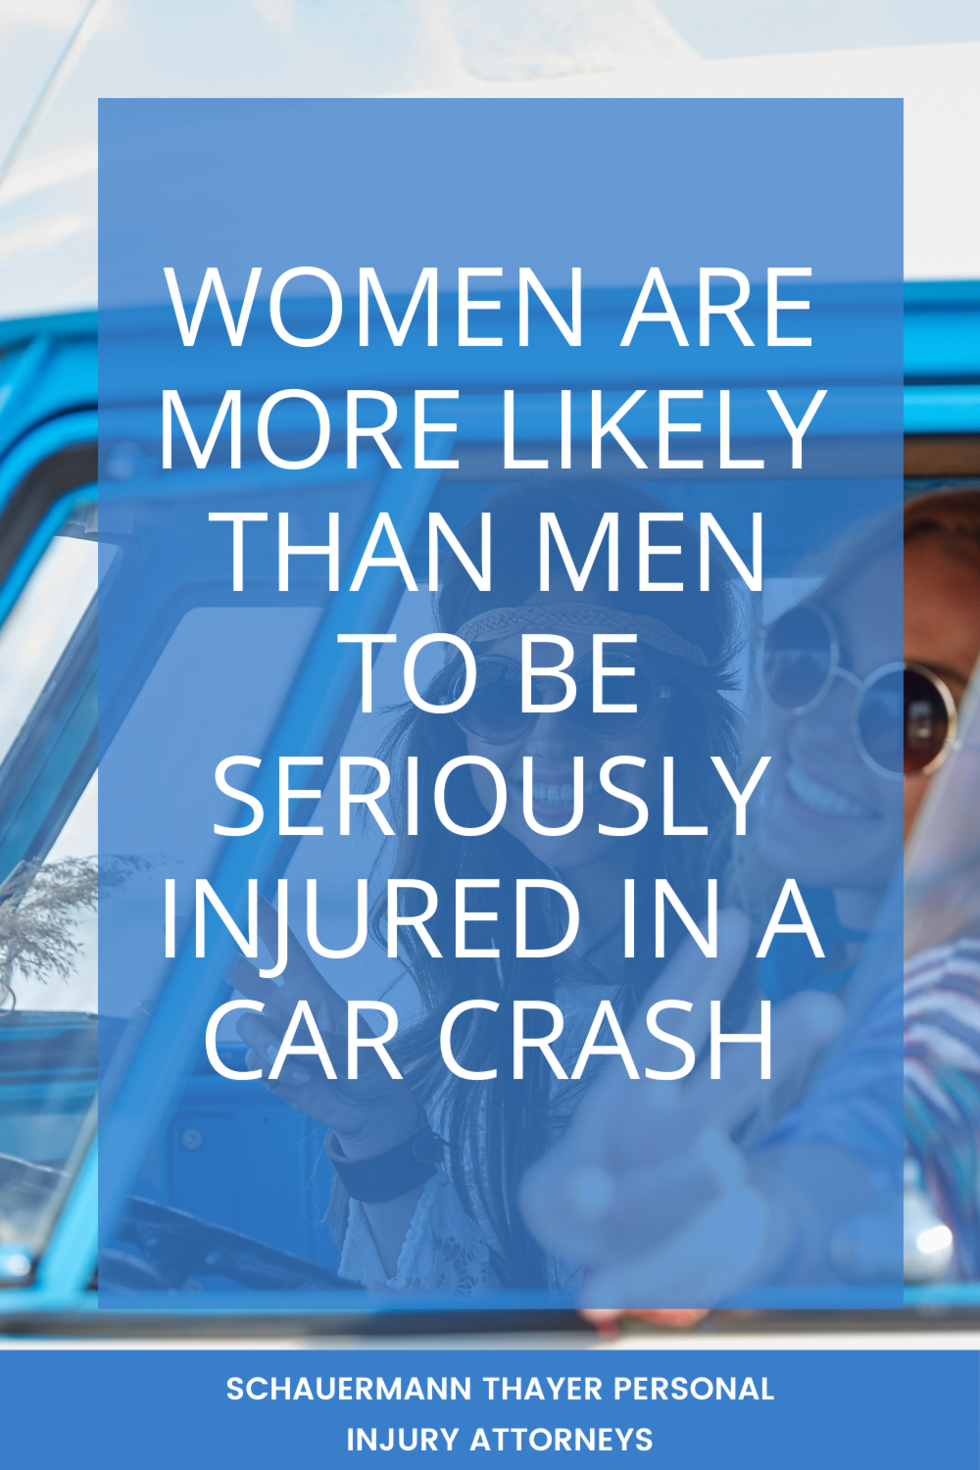 women_get_hurt_in_car_accidents_more